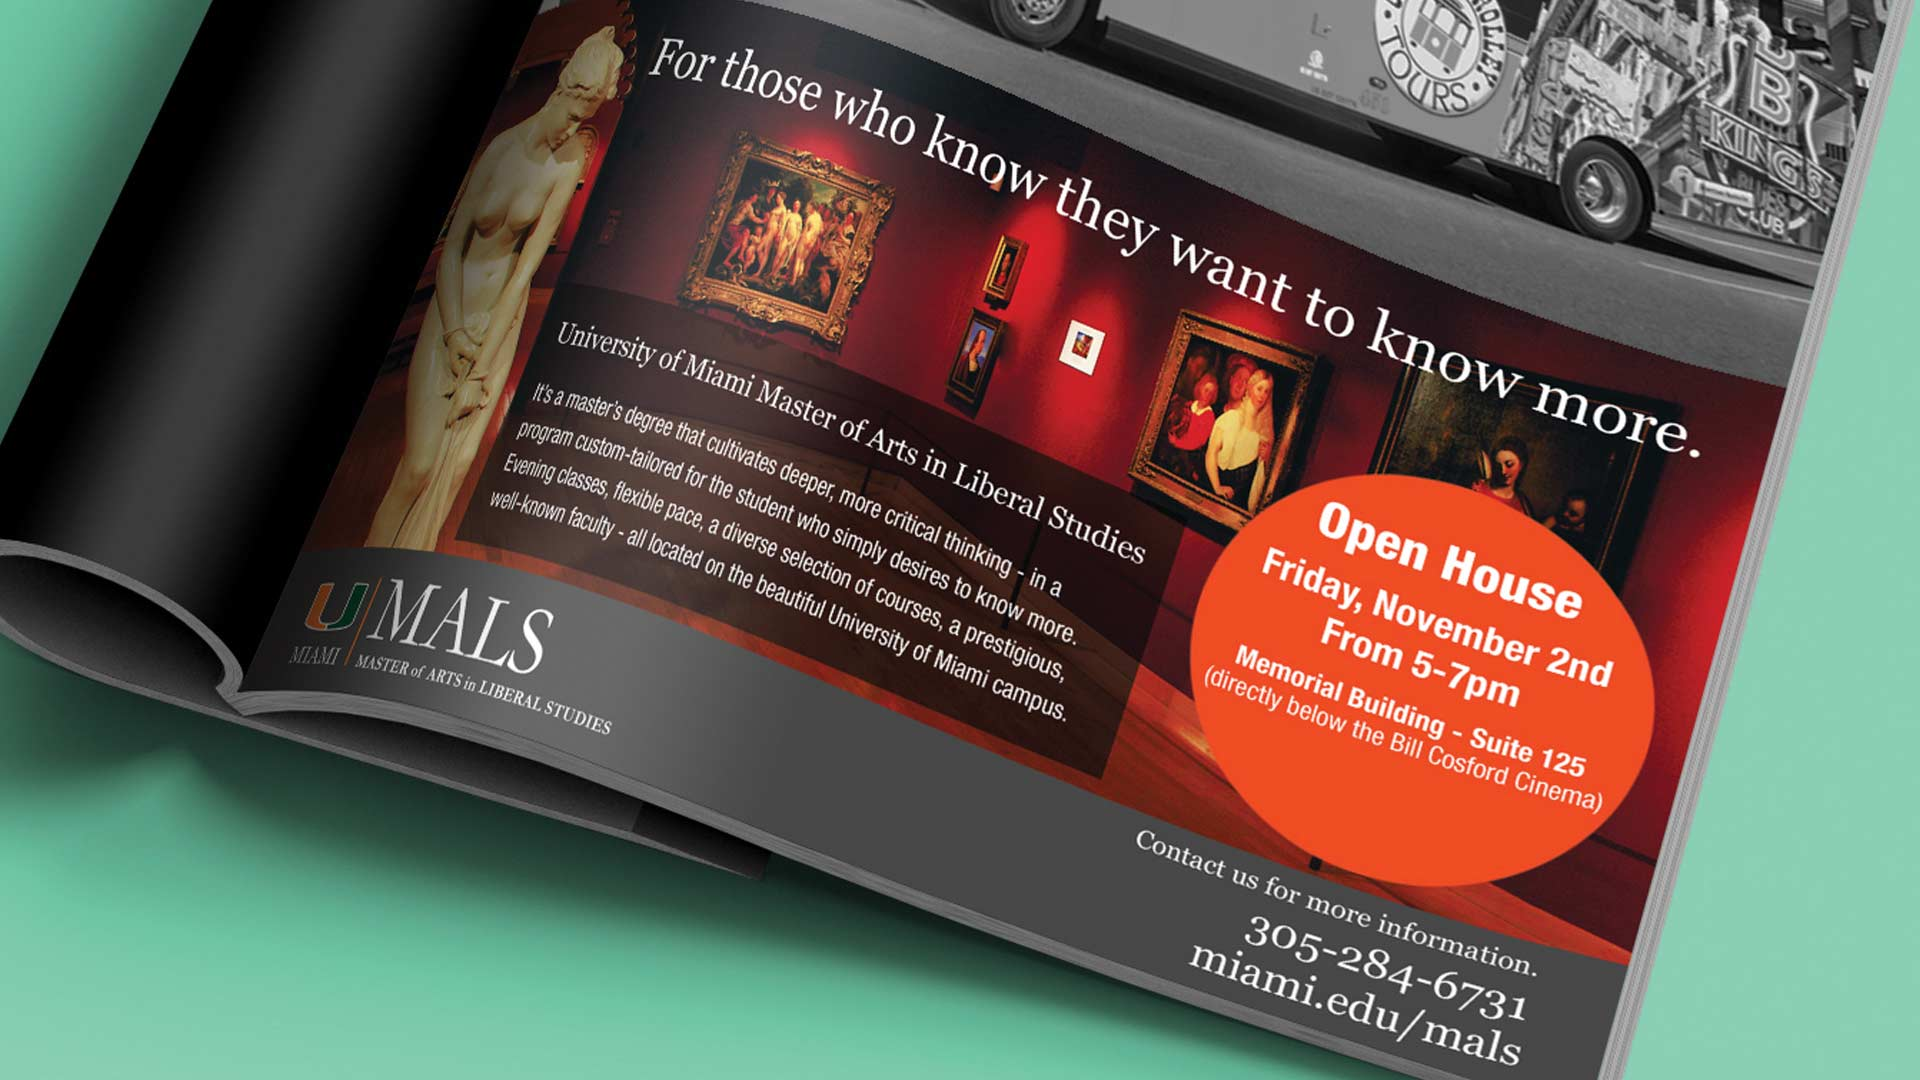 MALS Print Magazine Advertisement